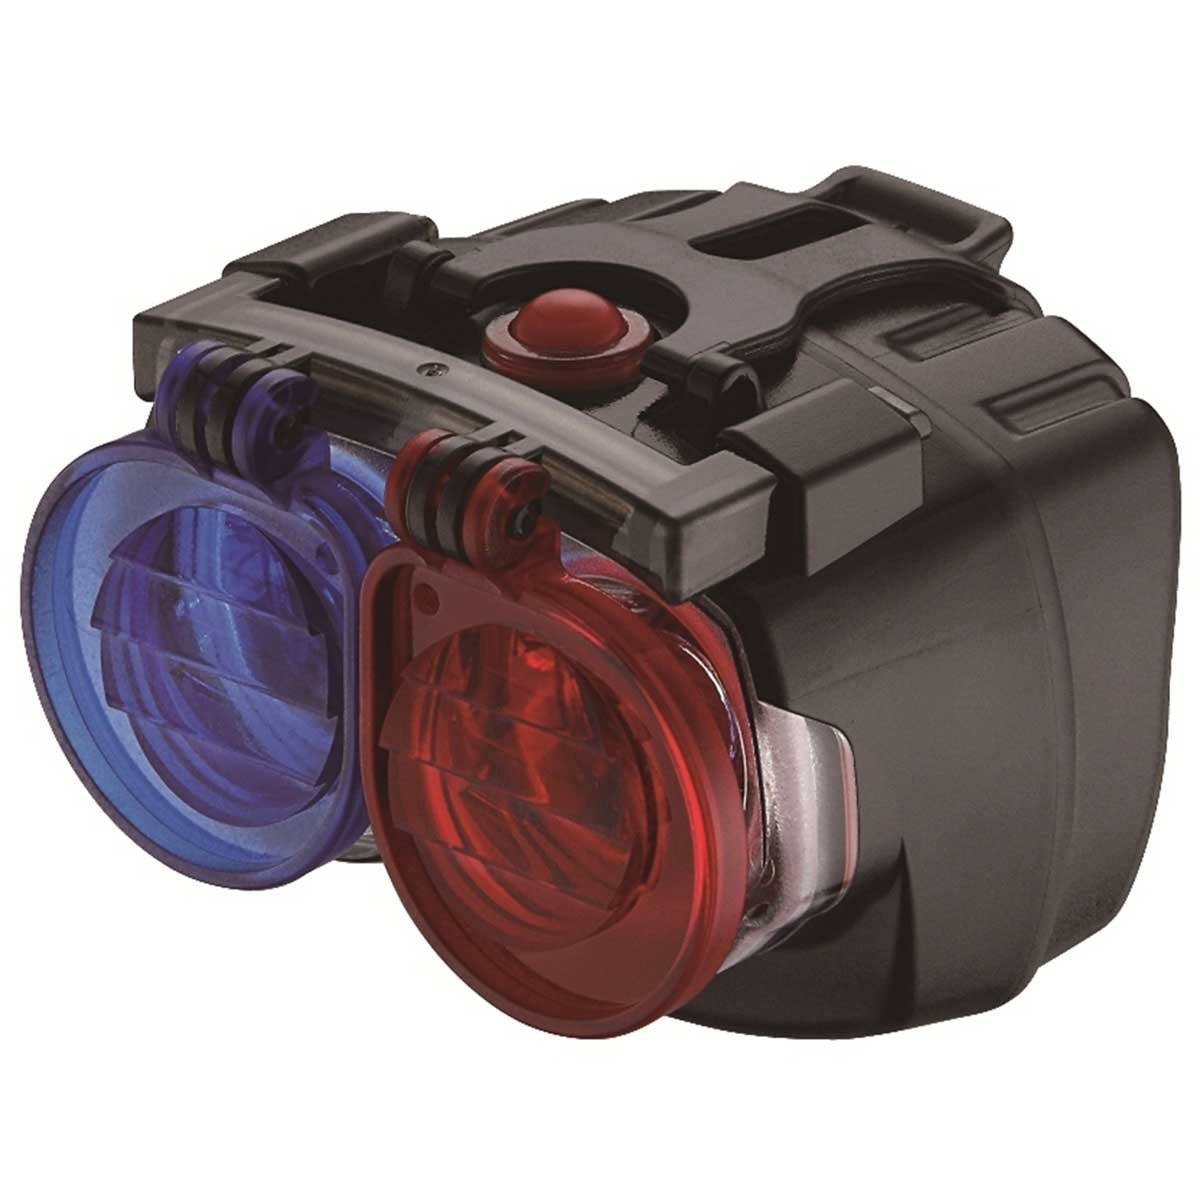 Cycle Force Nitestalker 2 Dual Light by Cycle Force